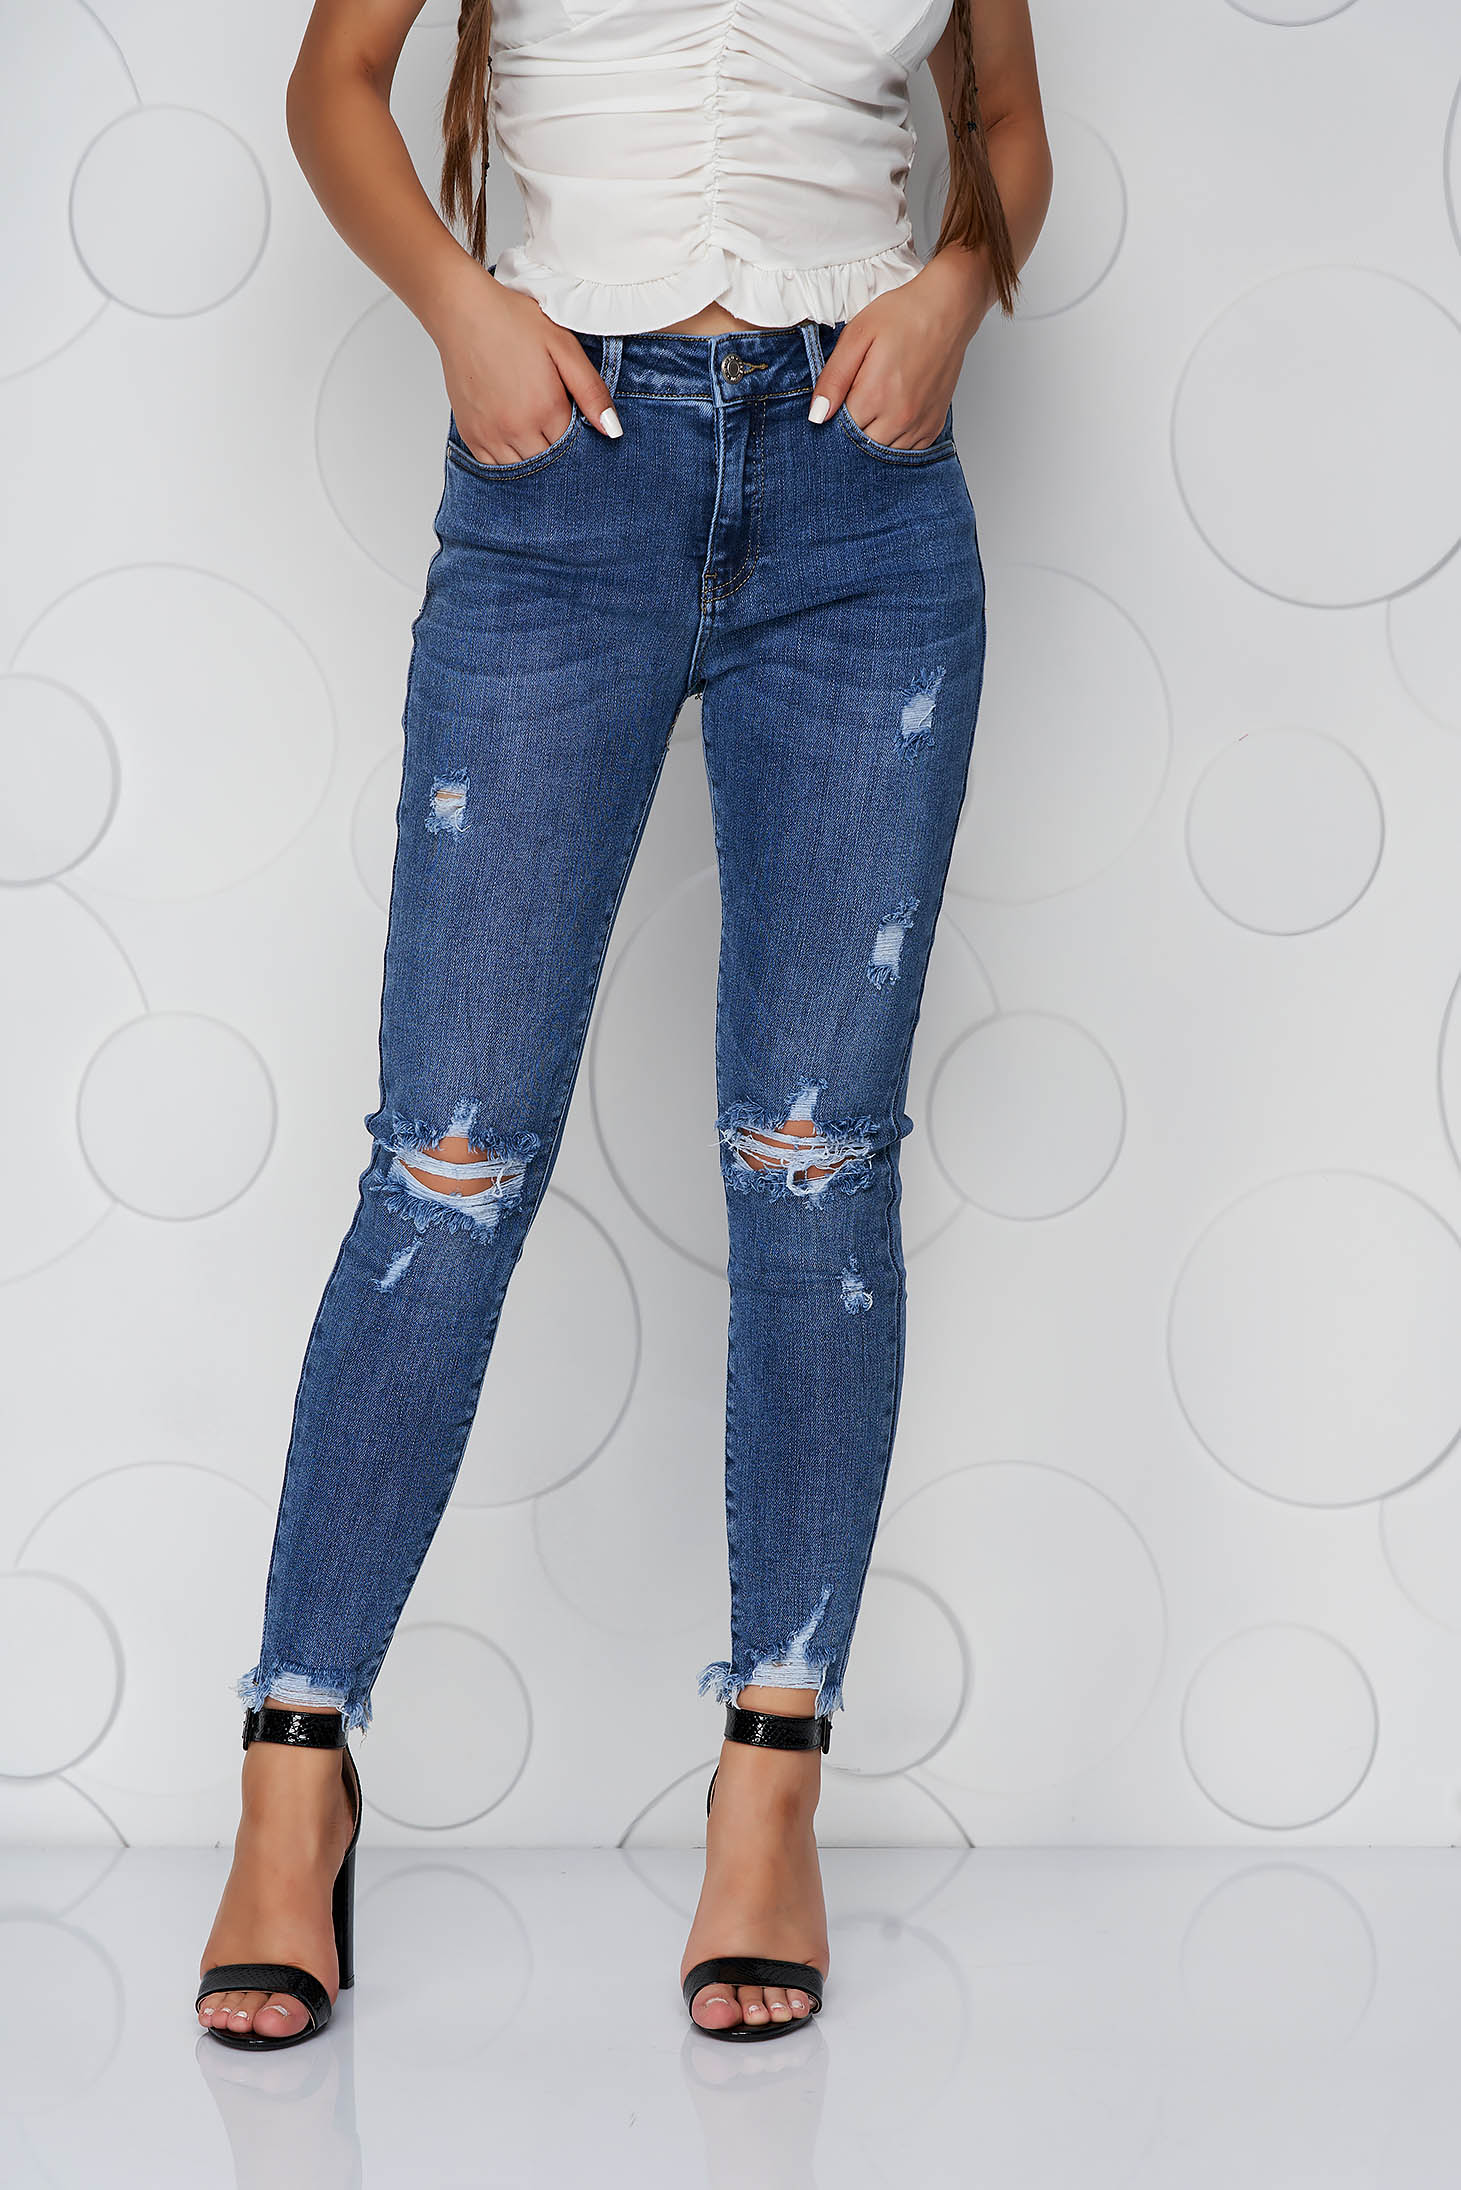 Blue jeans skinny jeans medium waist small rupture of material